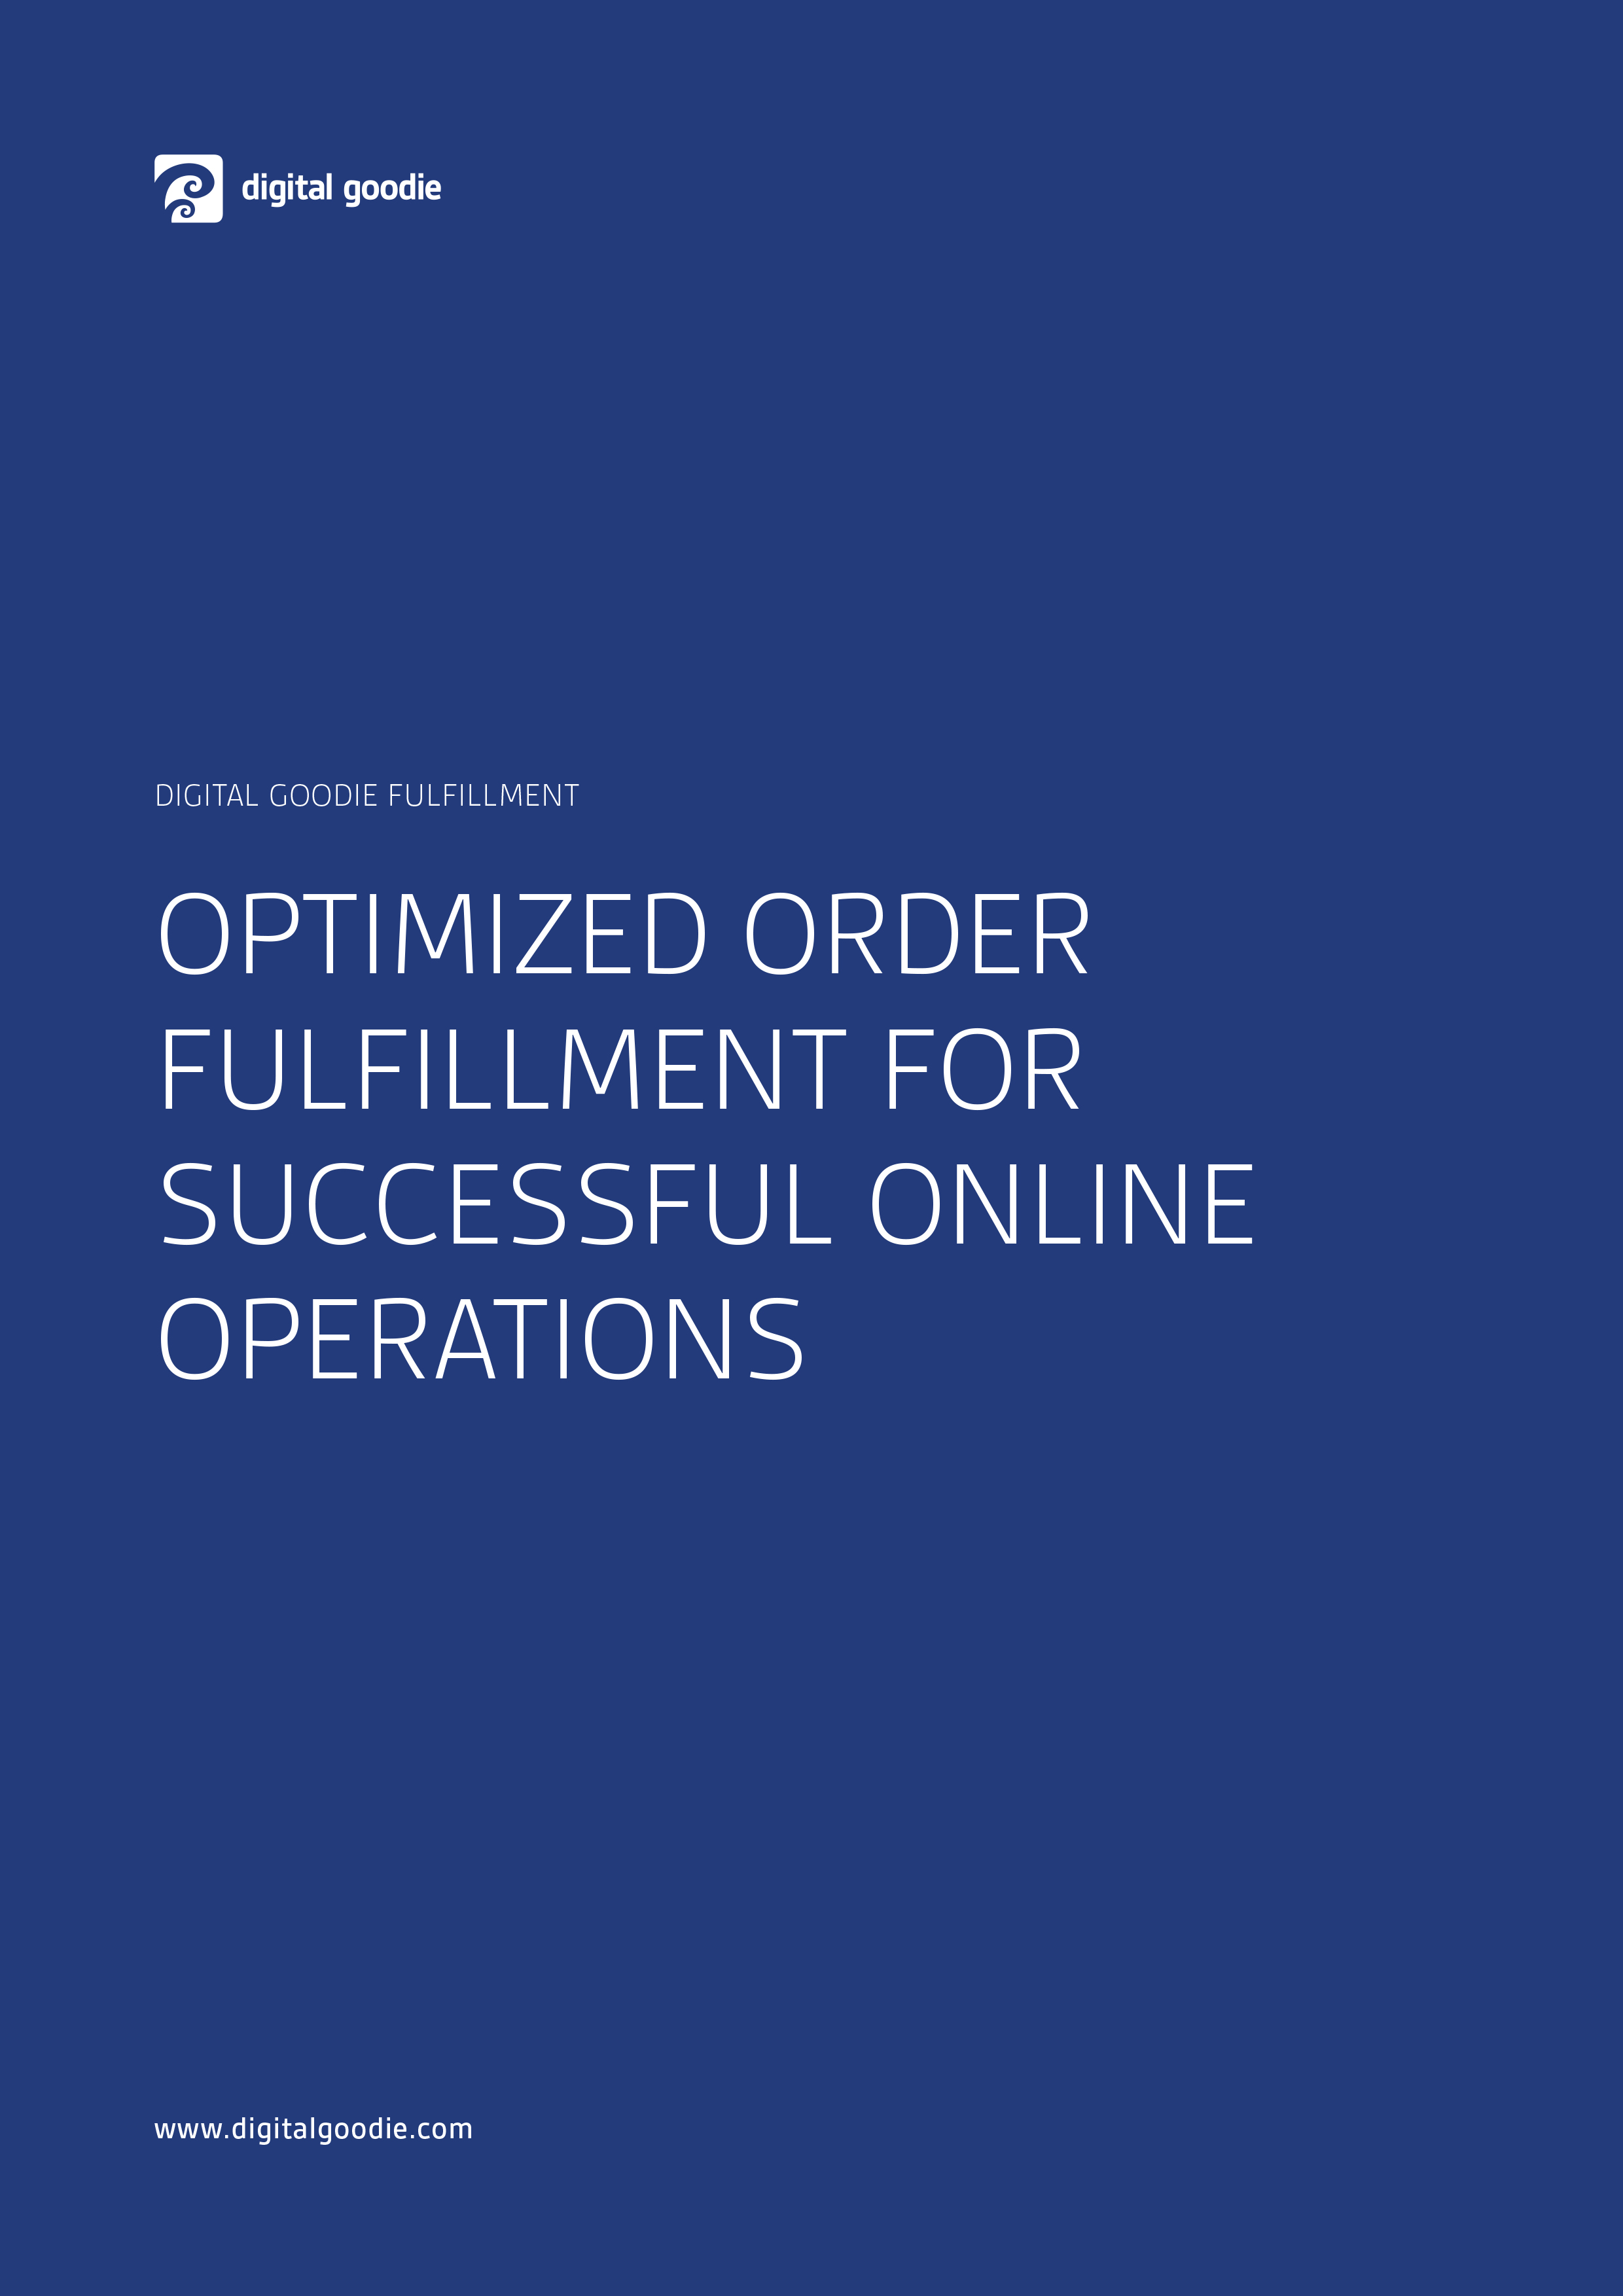 Digital Goodie Fulfillment